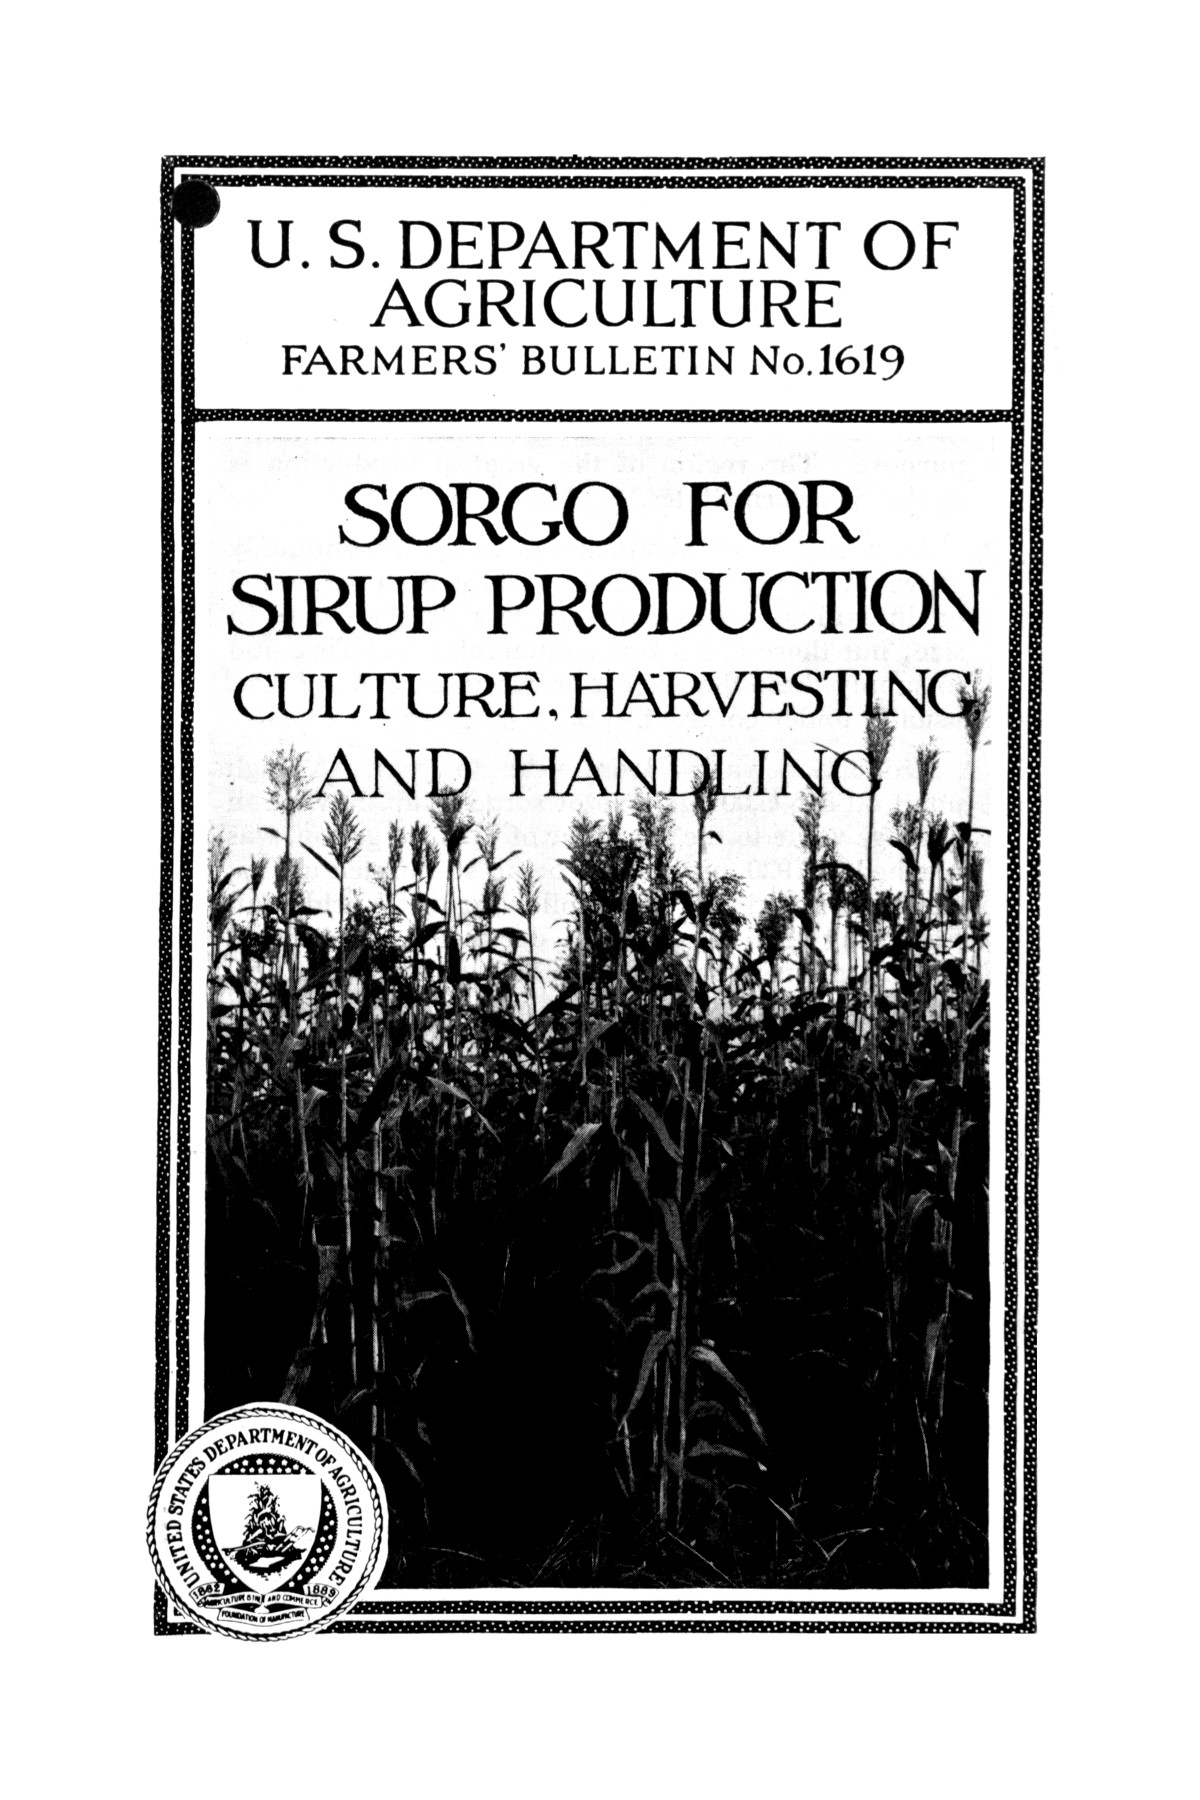 Sorgo for sirup production : culture, harvesting, and handling.                                                                                                      Front Cover